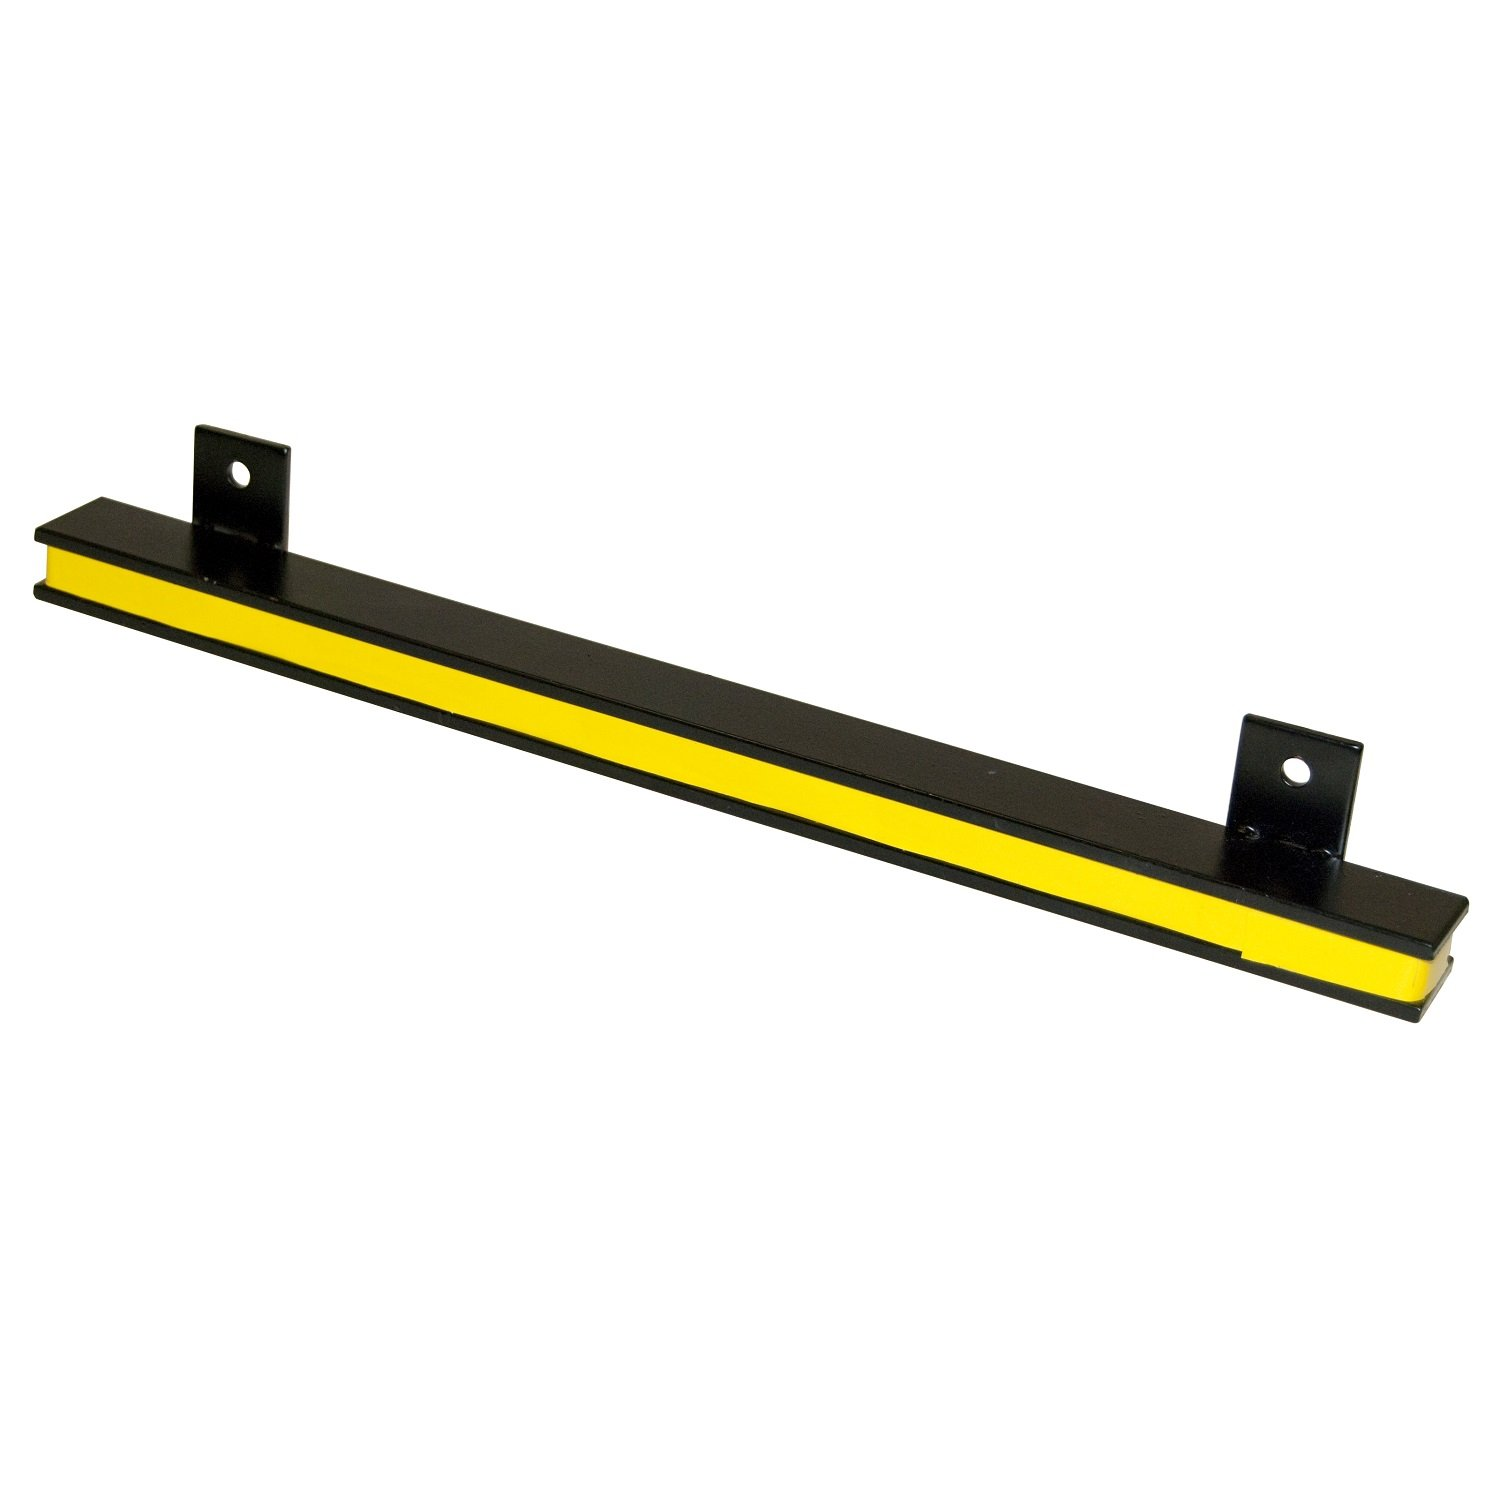 OEMTOOLS 24920 13 Inch Magnetic Tool Holder